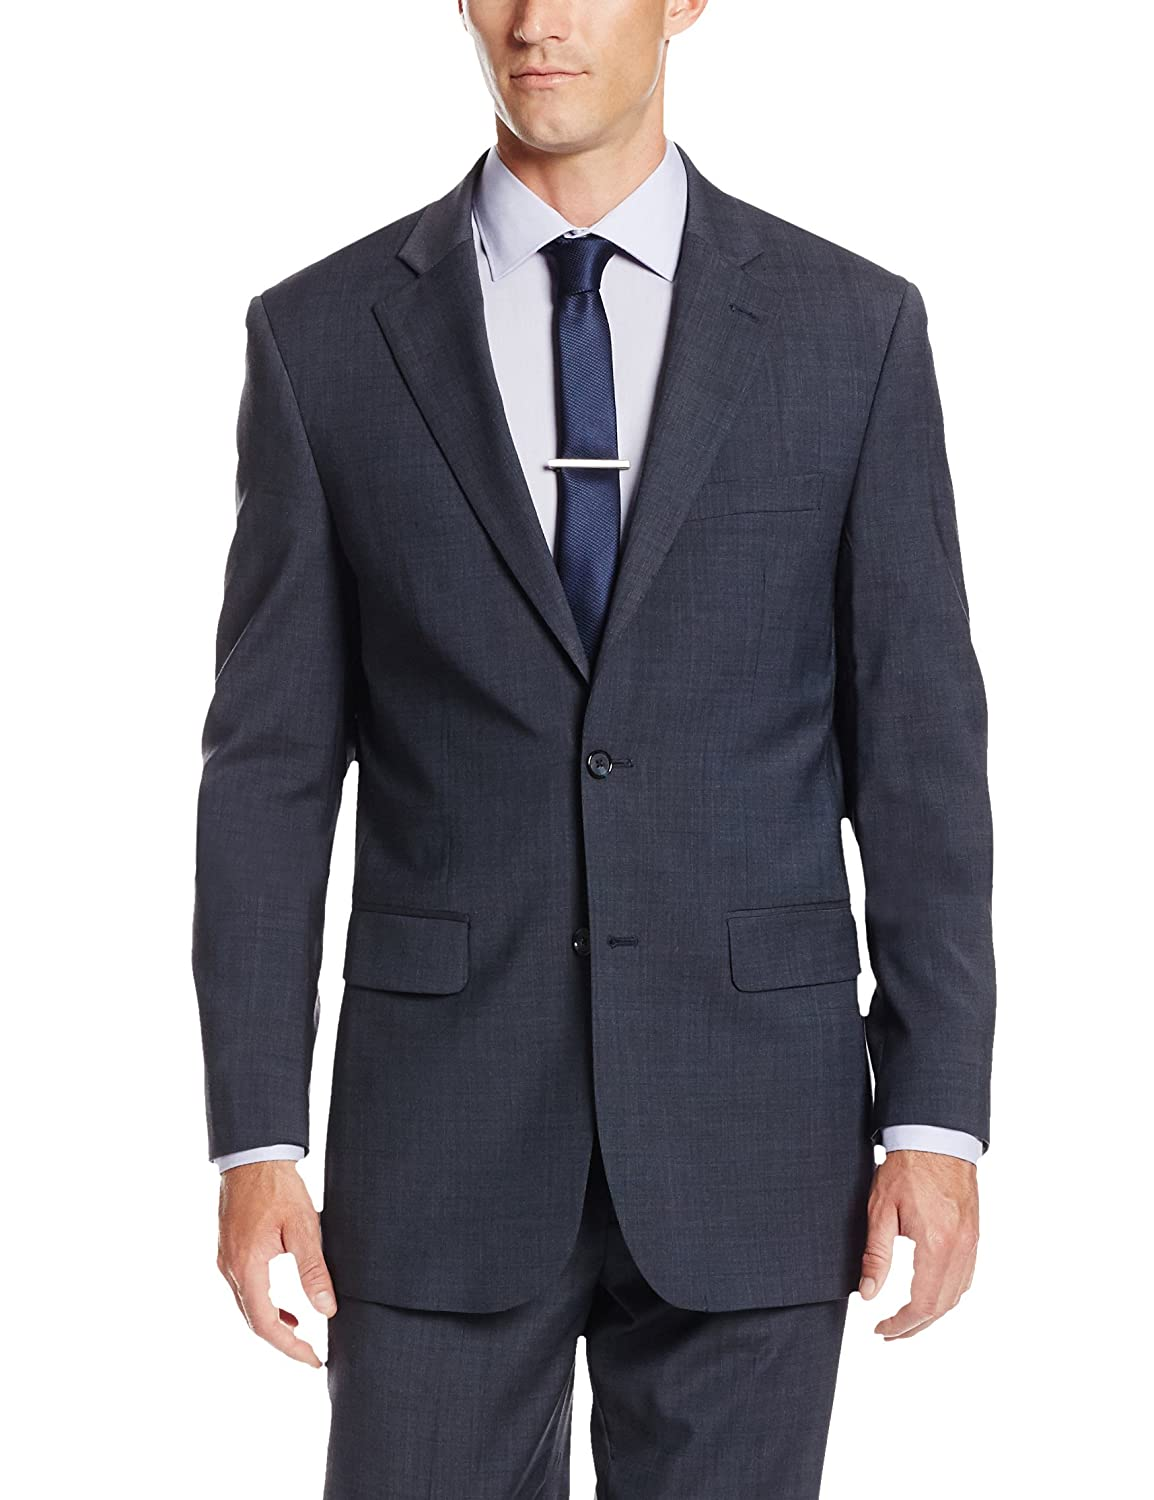 Nautica Men's New 2 Button Center Vent Suit Separate Jacket Nautica Men' s Tailored HB2FBNO